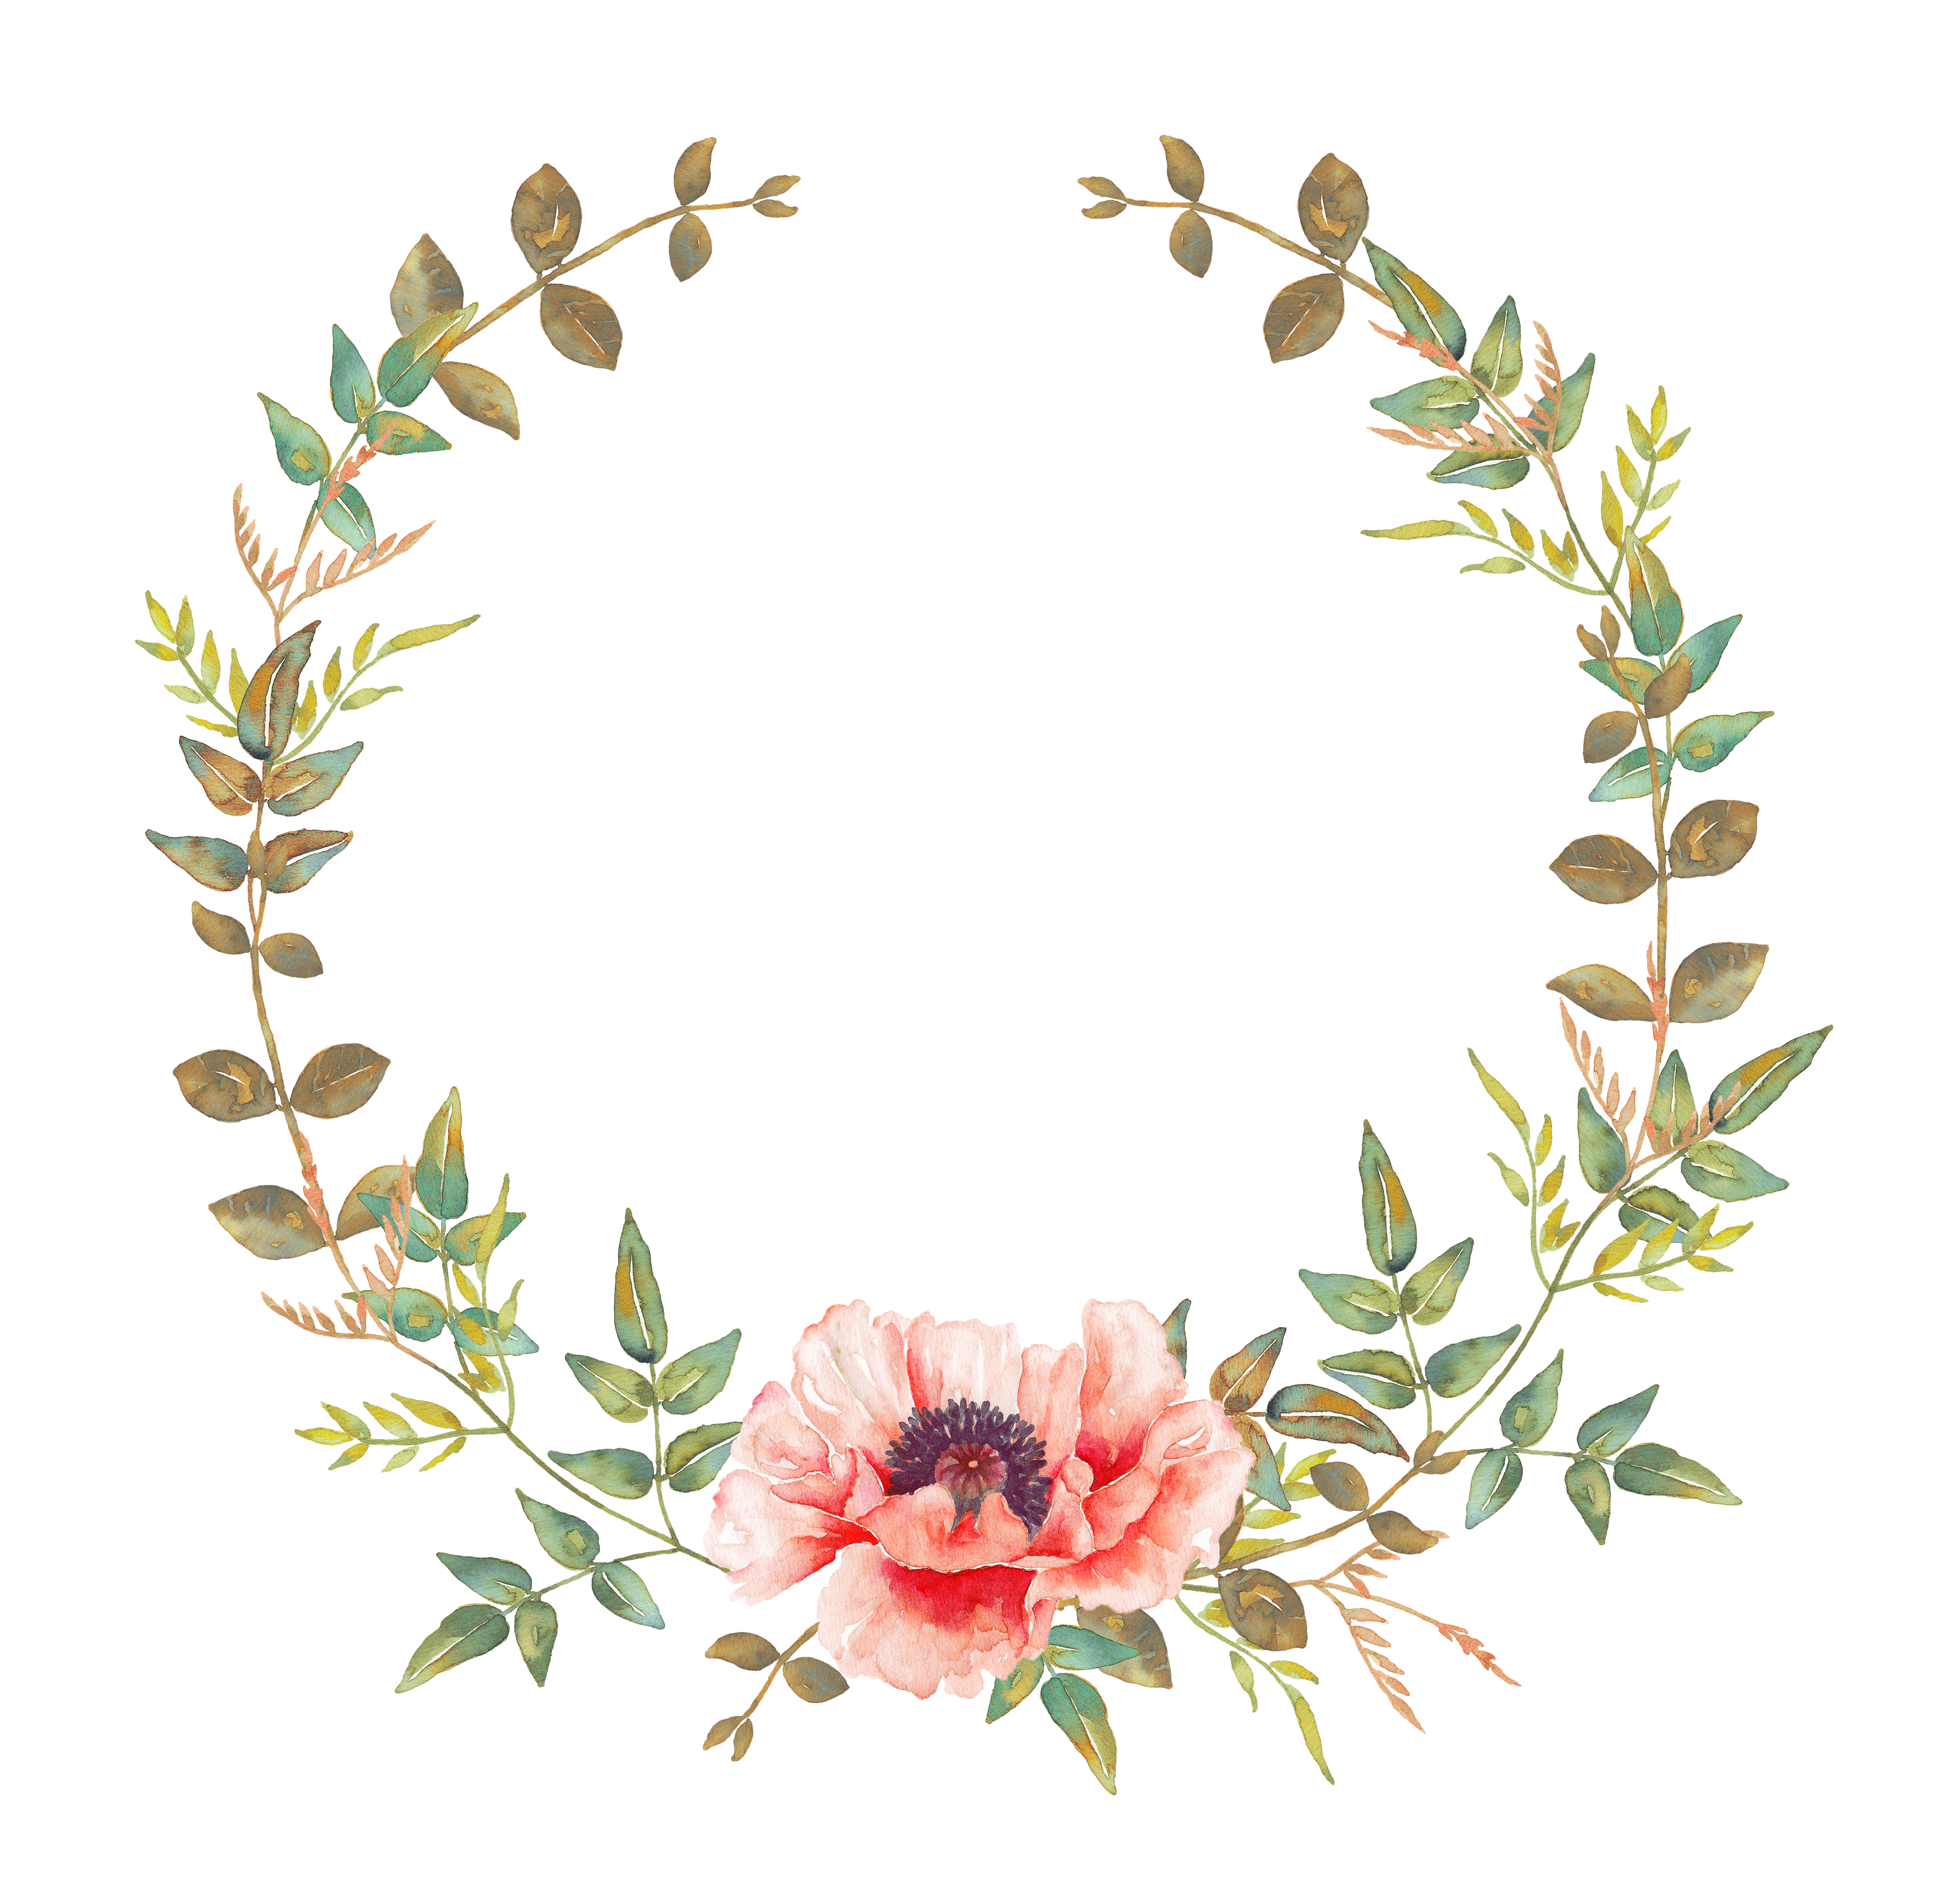 Flower wreath clipart. Pin by on pinterest